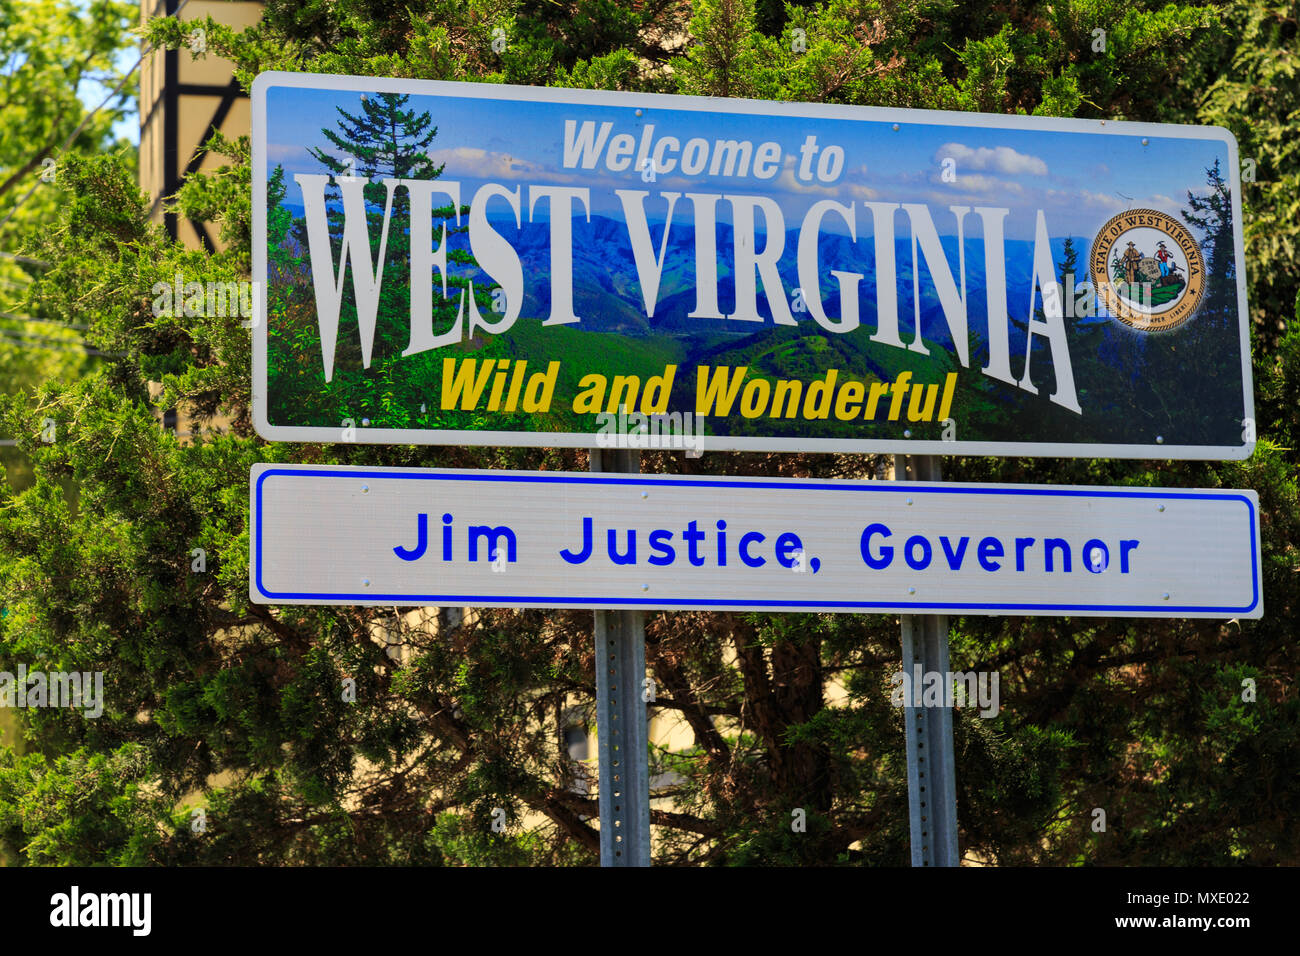 Shepherdstown, WV, USA - May 24, 2018: The Welcome to West Virginia